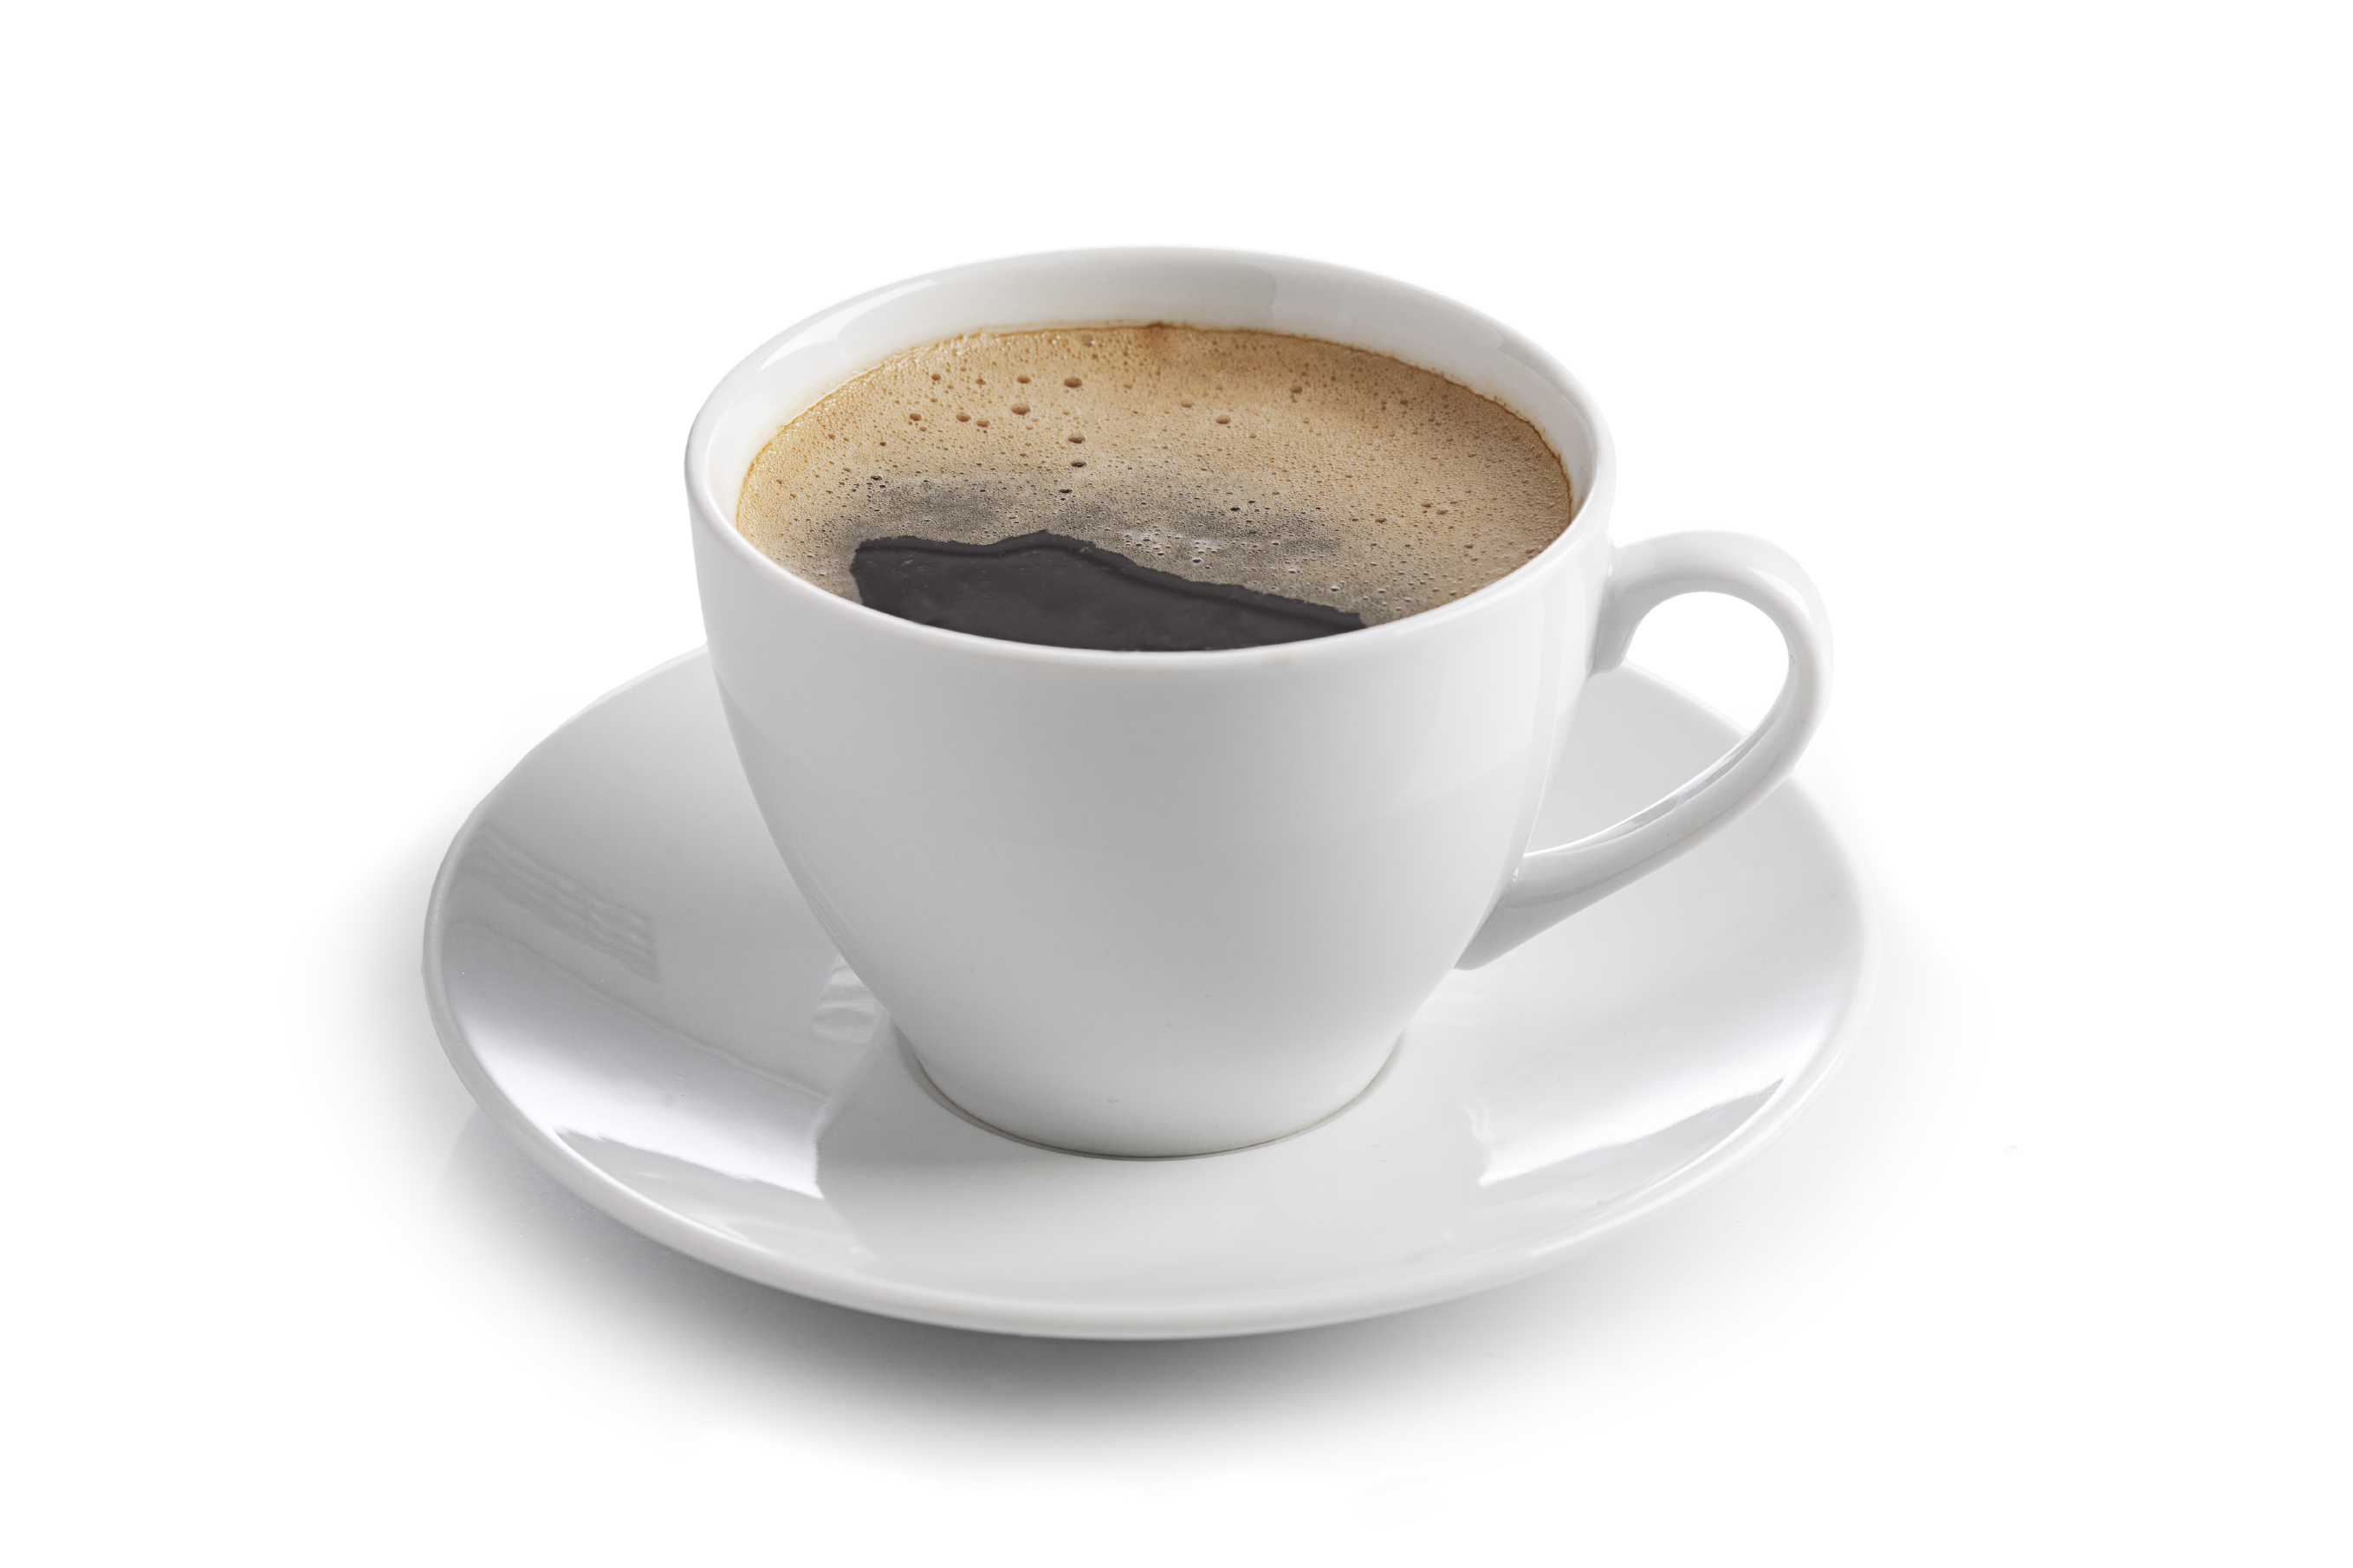 Black Coffee in a Cup 494.2 Kb